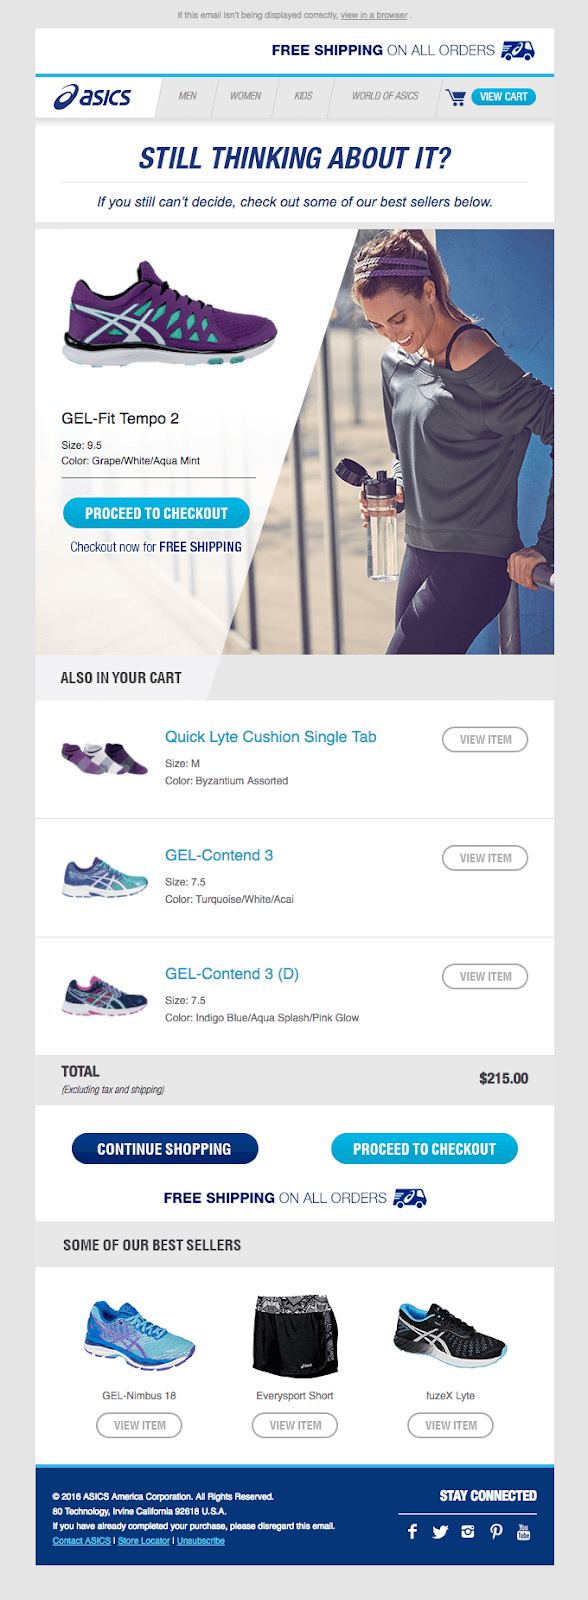 Another great way you can personalize your emails is by using your subscriber's browsing data. Here's a great example by Asics below: